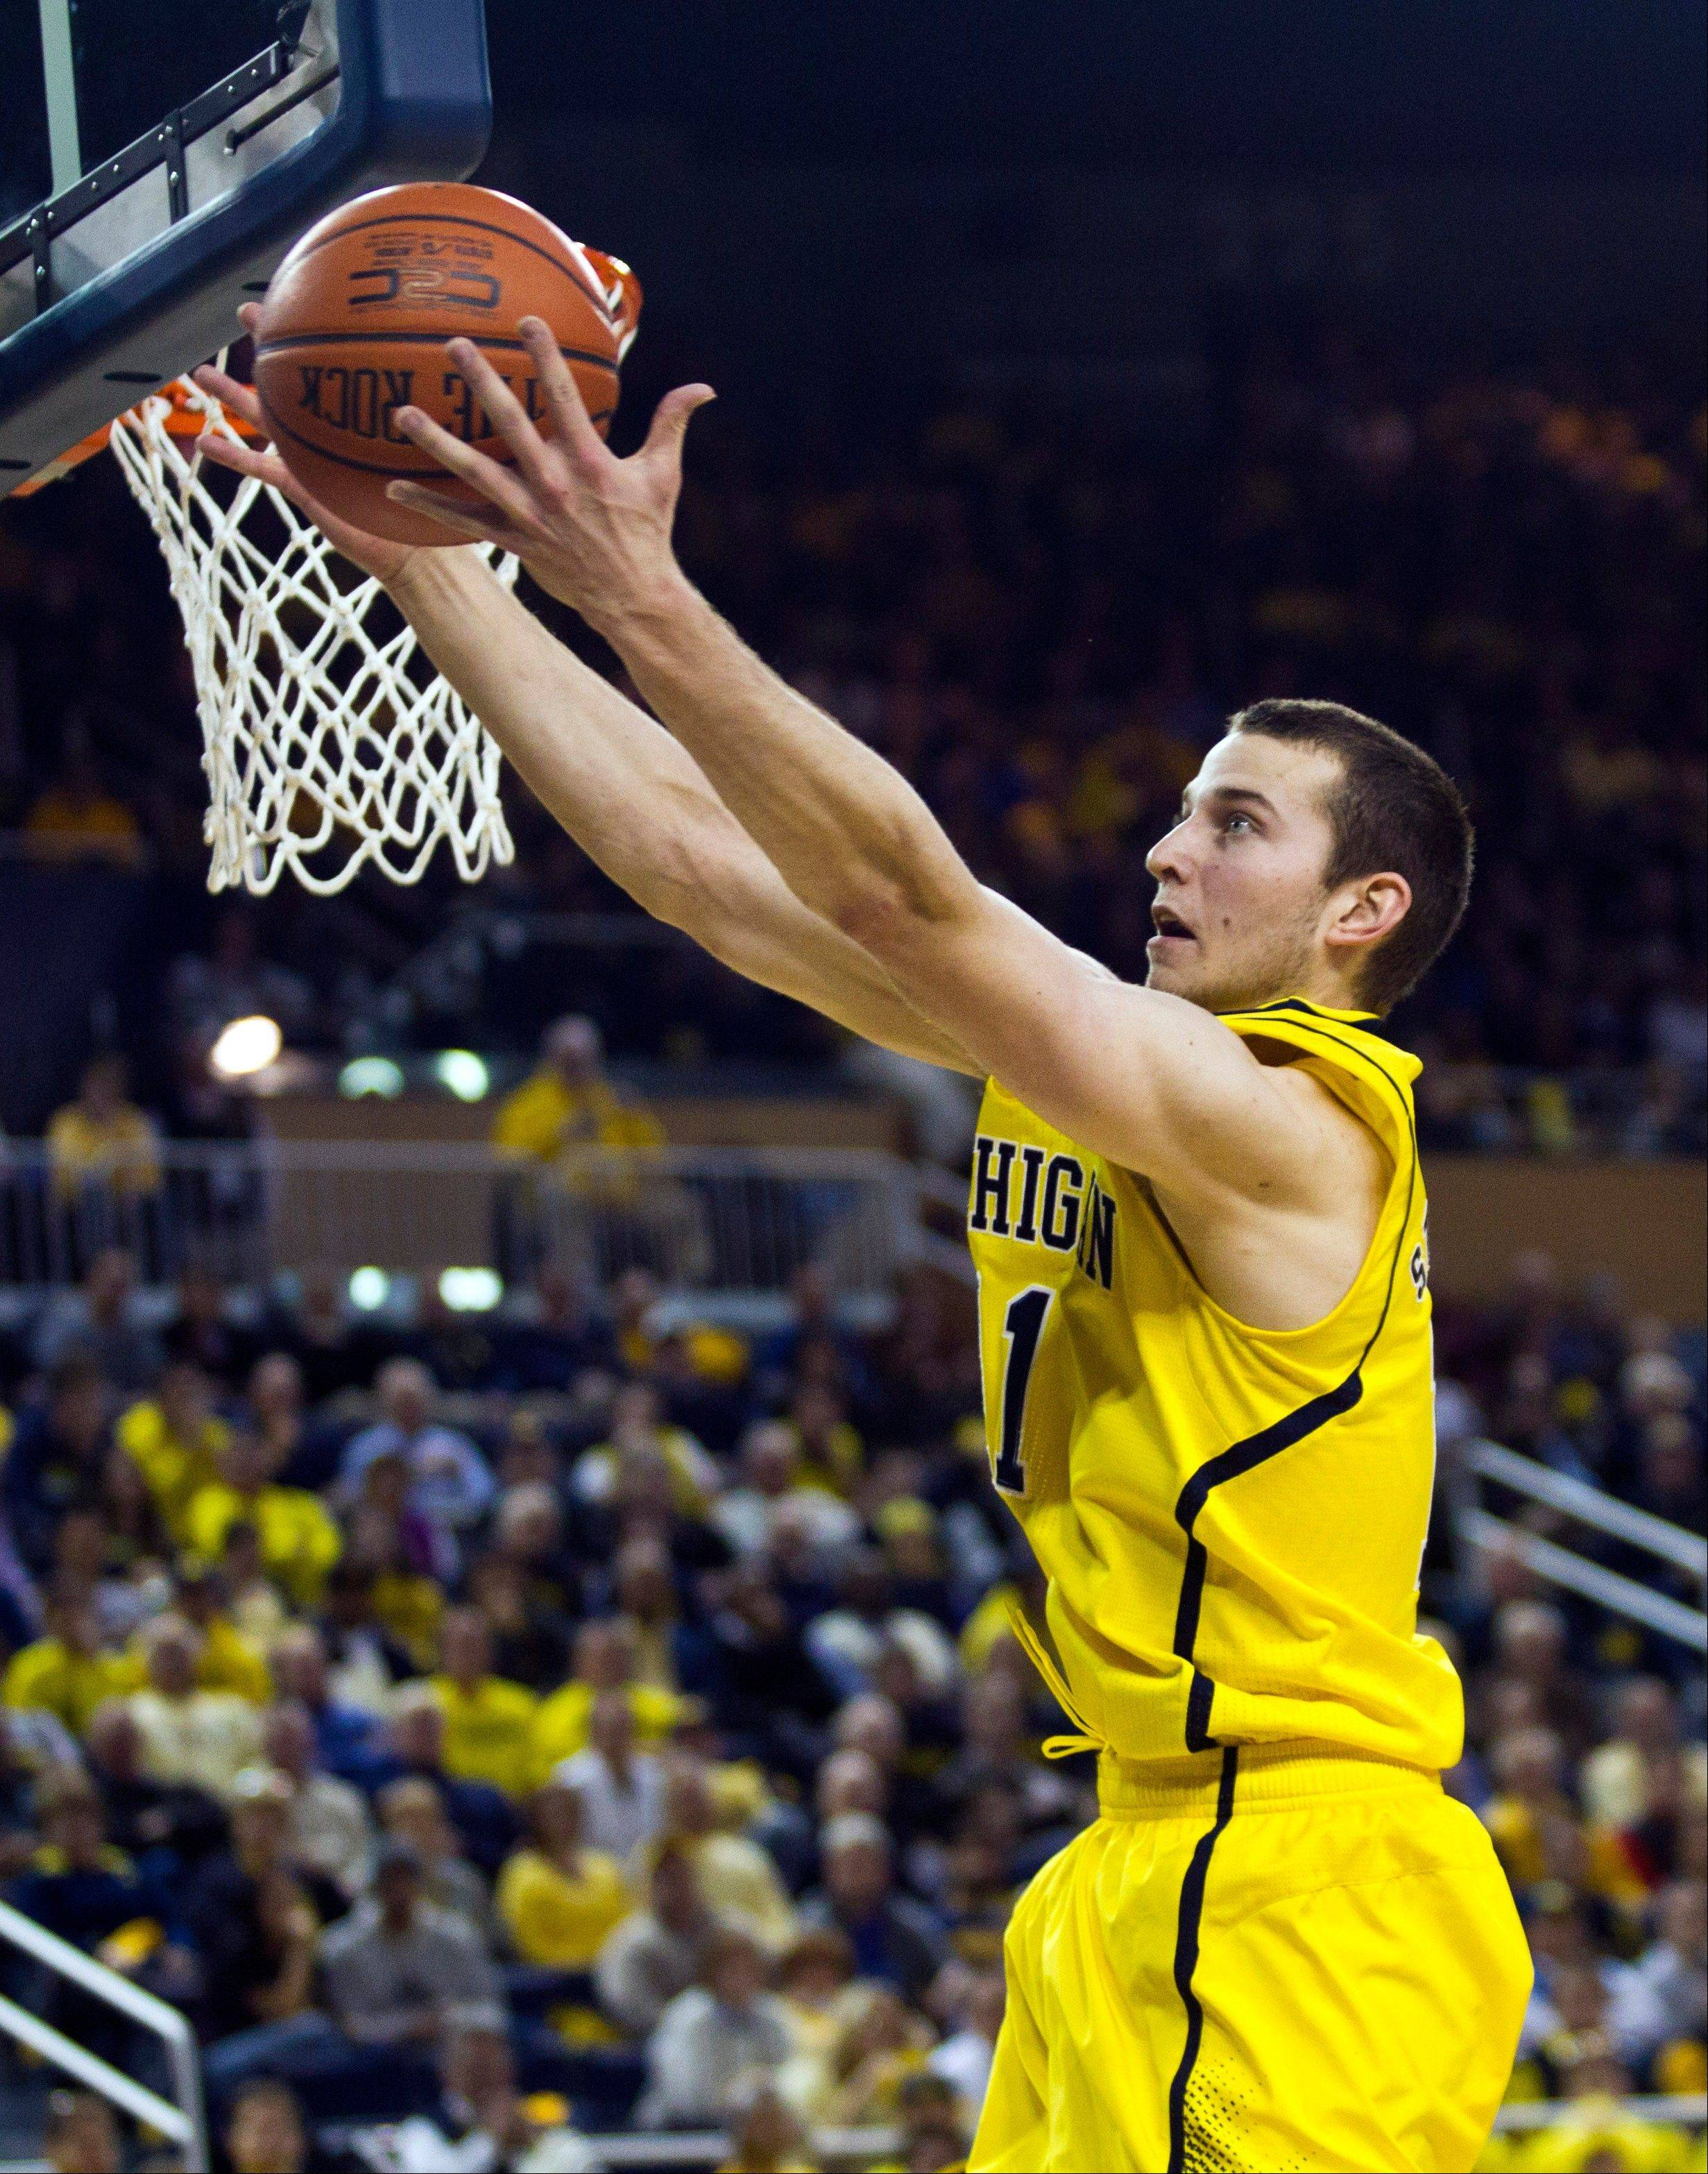 No. 3 Michigan holds off No. 18 NC State 79-72